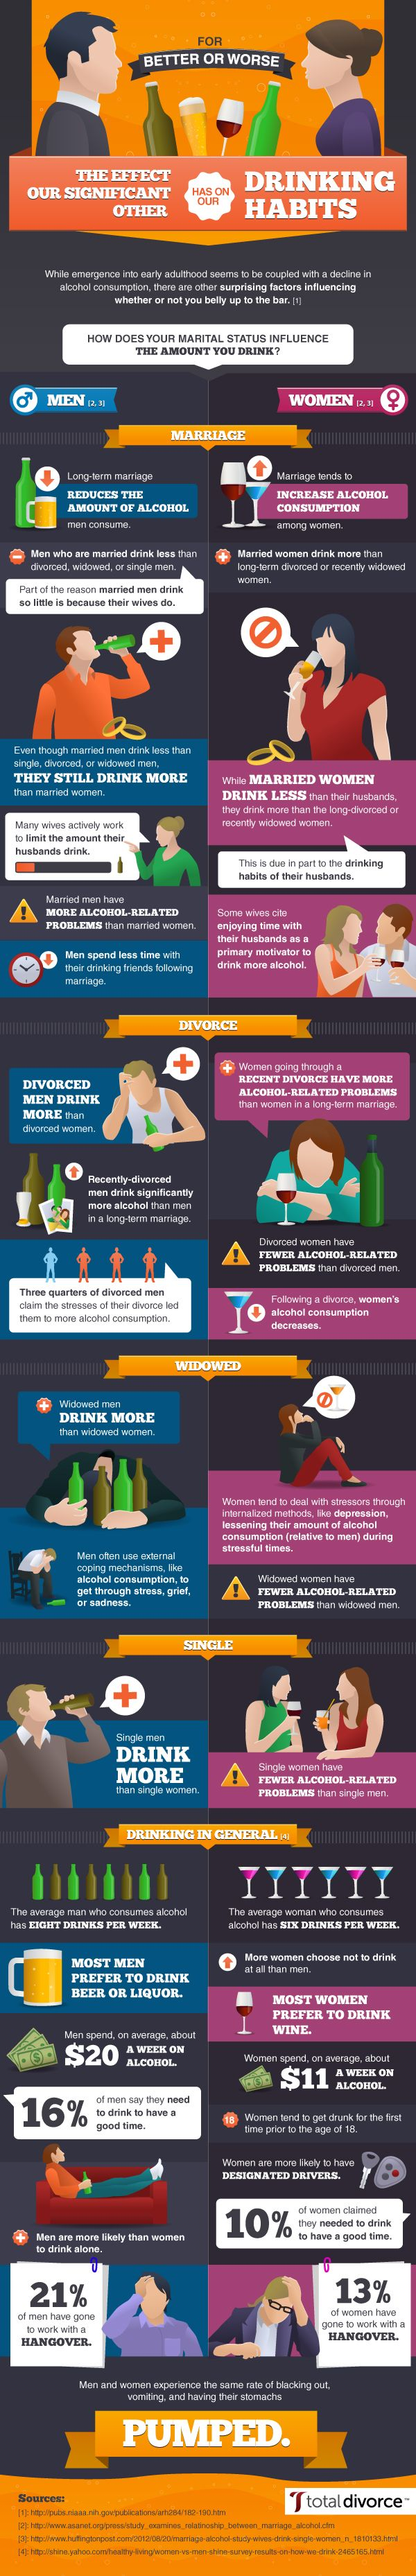 While emergence into early adulthood seems to be coupled with a decline in alcohol consumption, there are other surprising factors influencing whether or not you belly up to the bar.